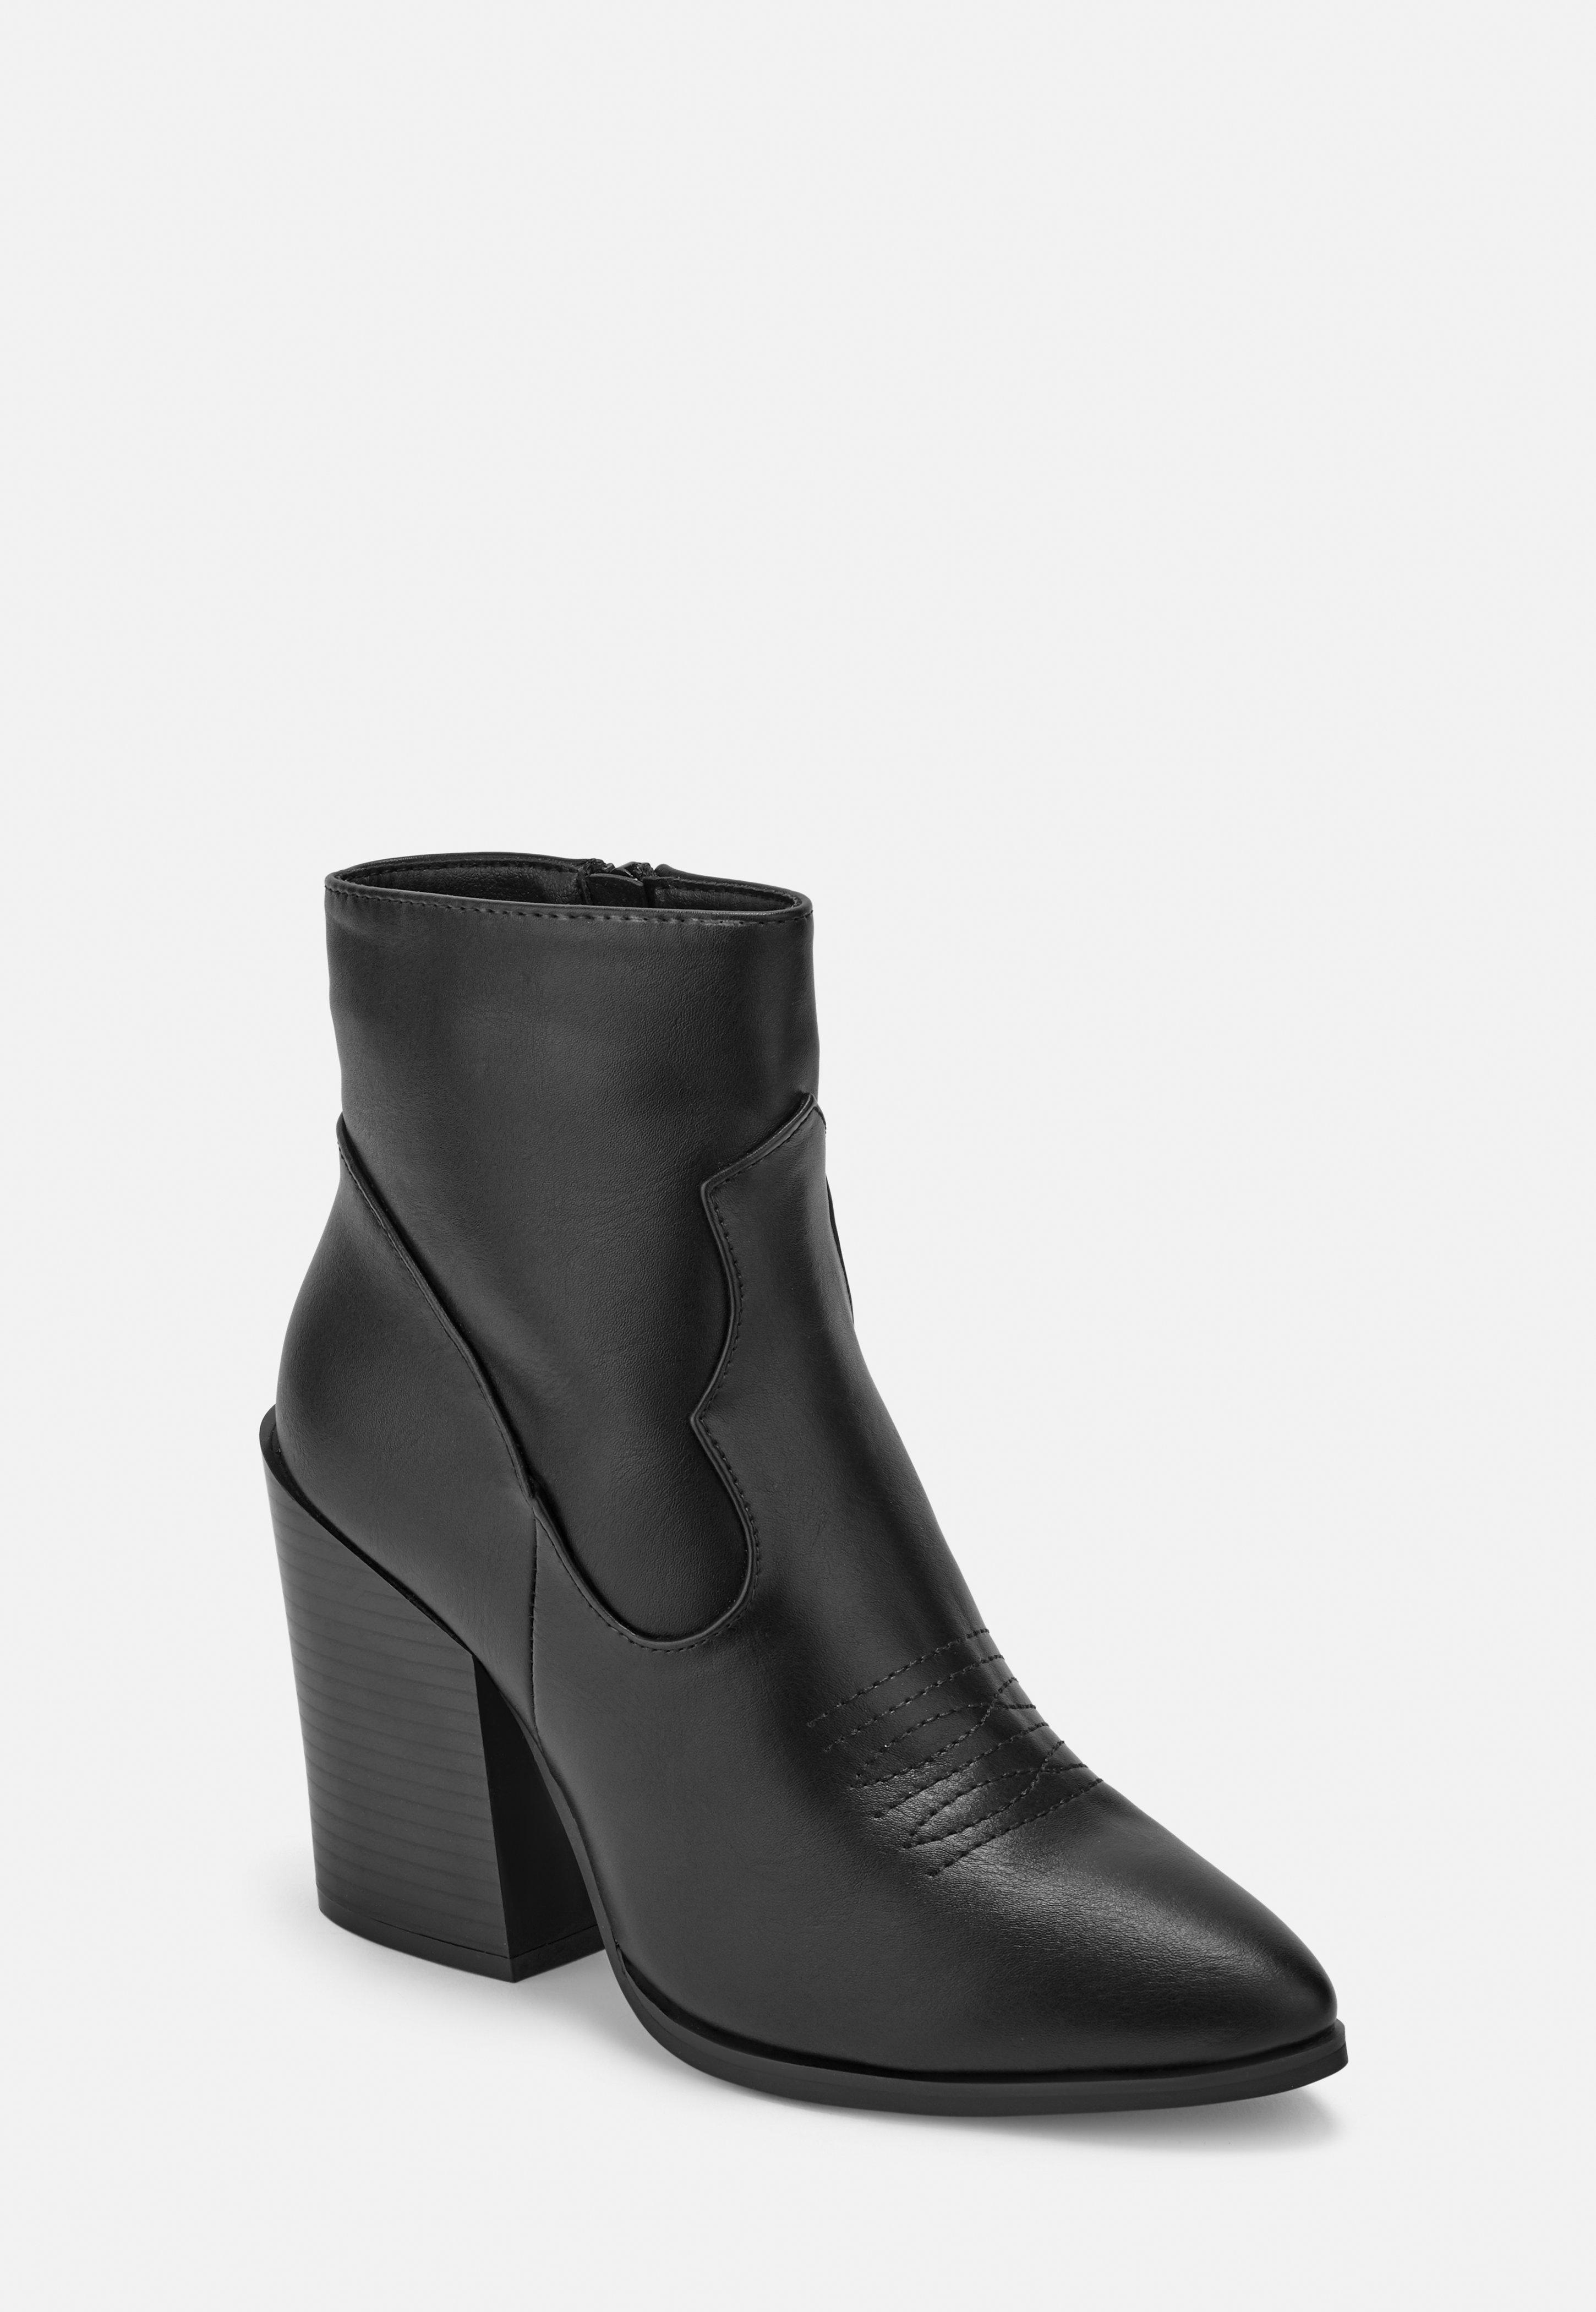 39543075855 Black Feature Heel Western Ankle Boots